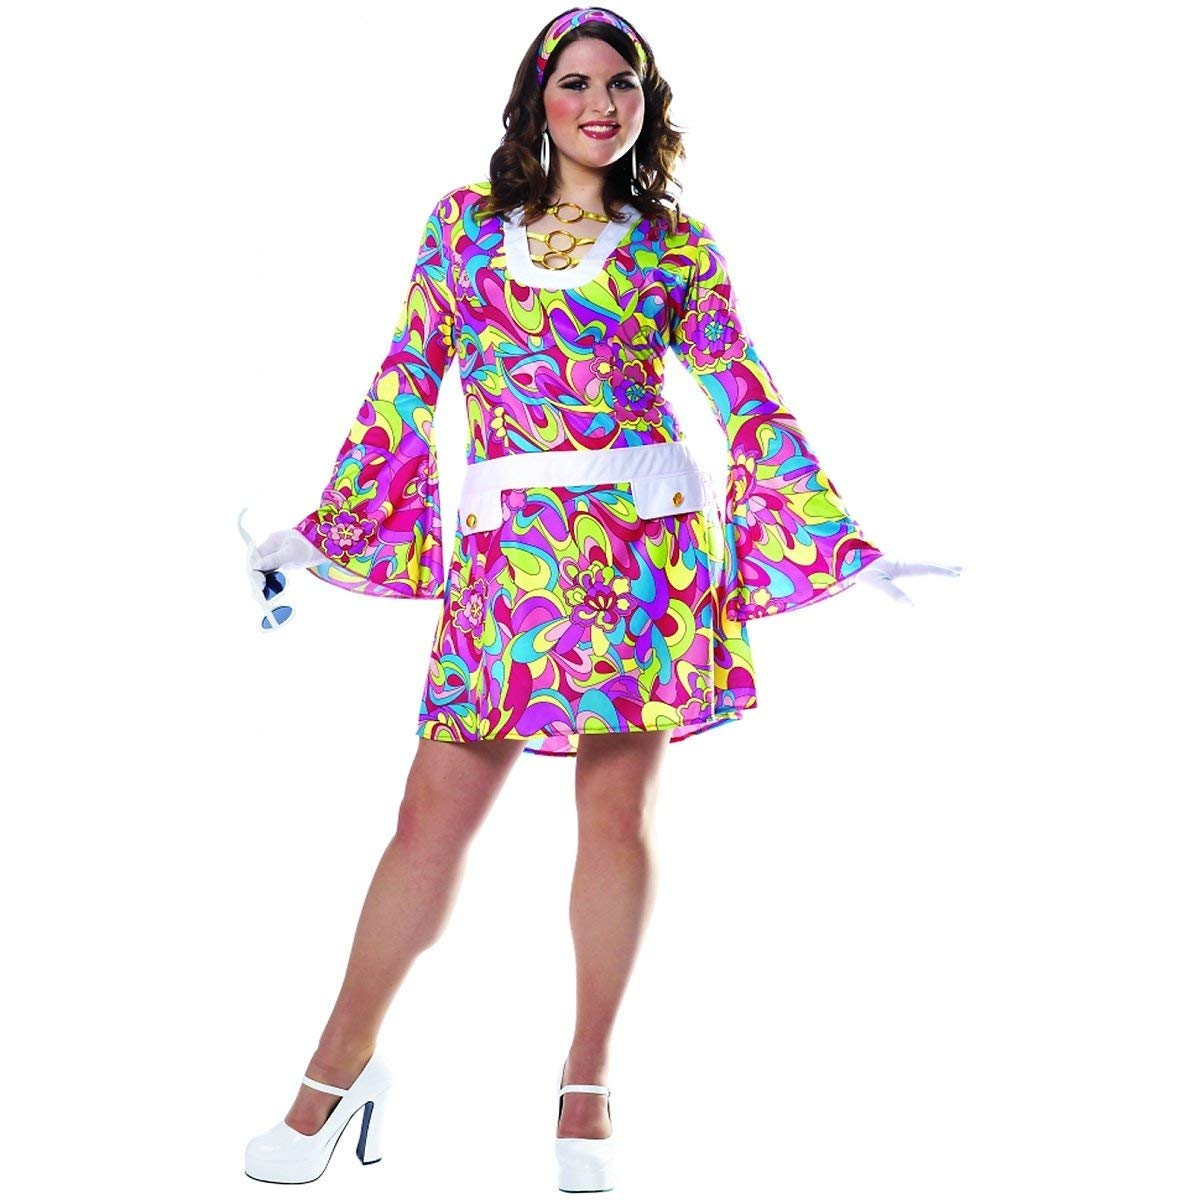 60s Costumes: Hippie, Go Go Dancer, Flower Child, Mod Style Costume Culture Groovy Chic Plus Adult Costume - Plus Size Multicolored Womens Adult XX-Large $40.57 AT vintagedancer.com